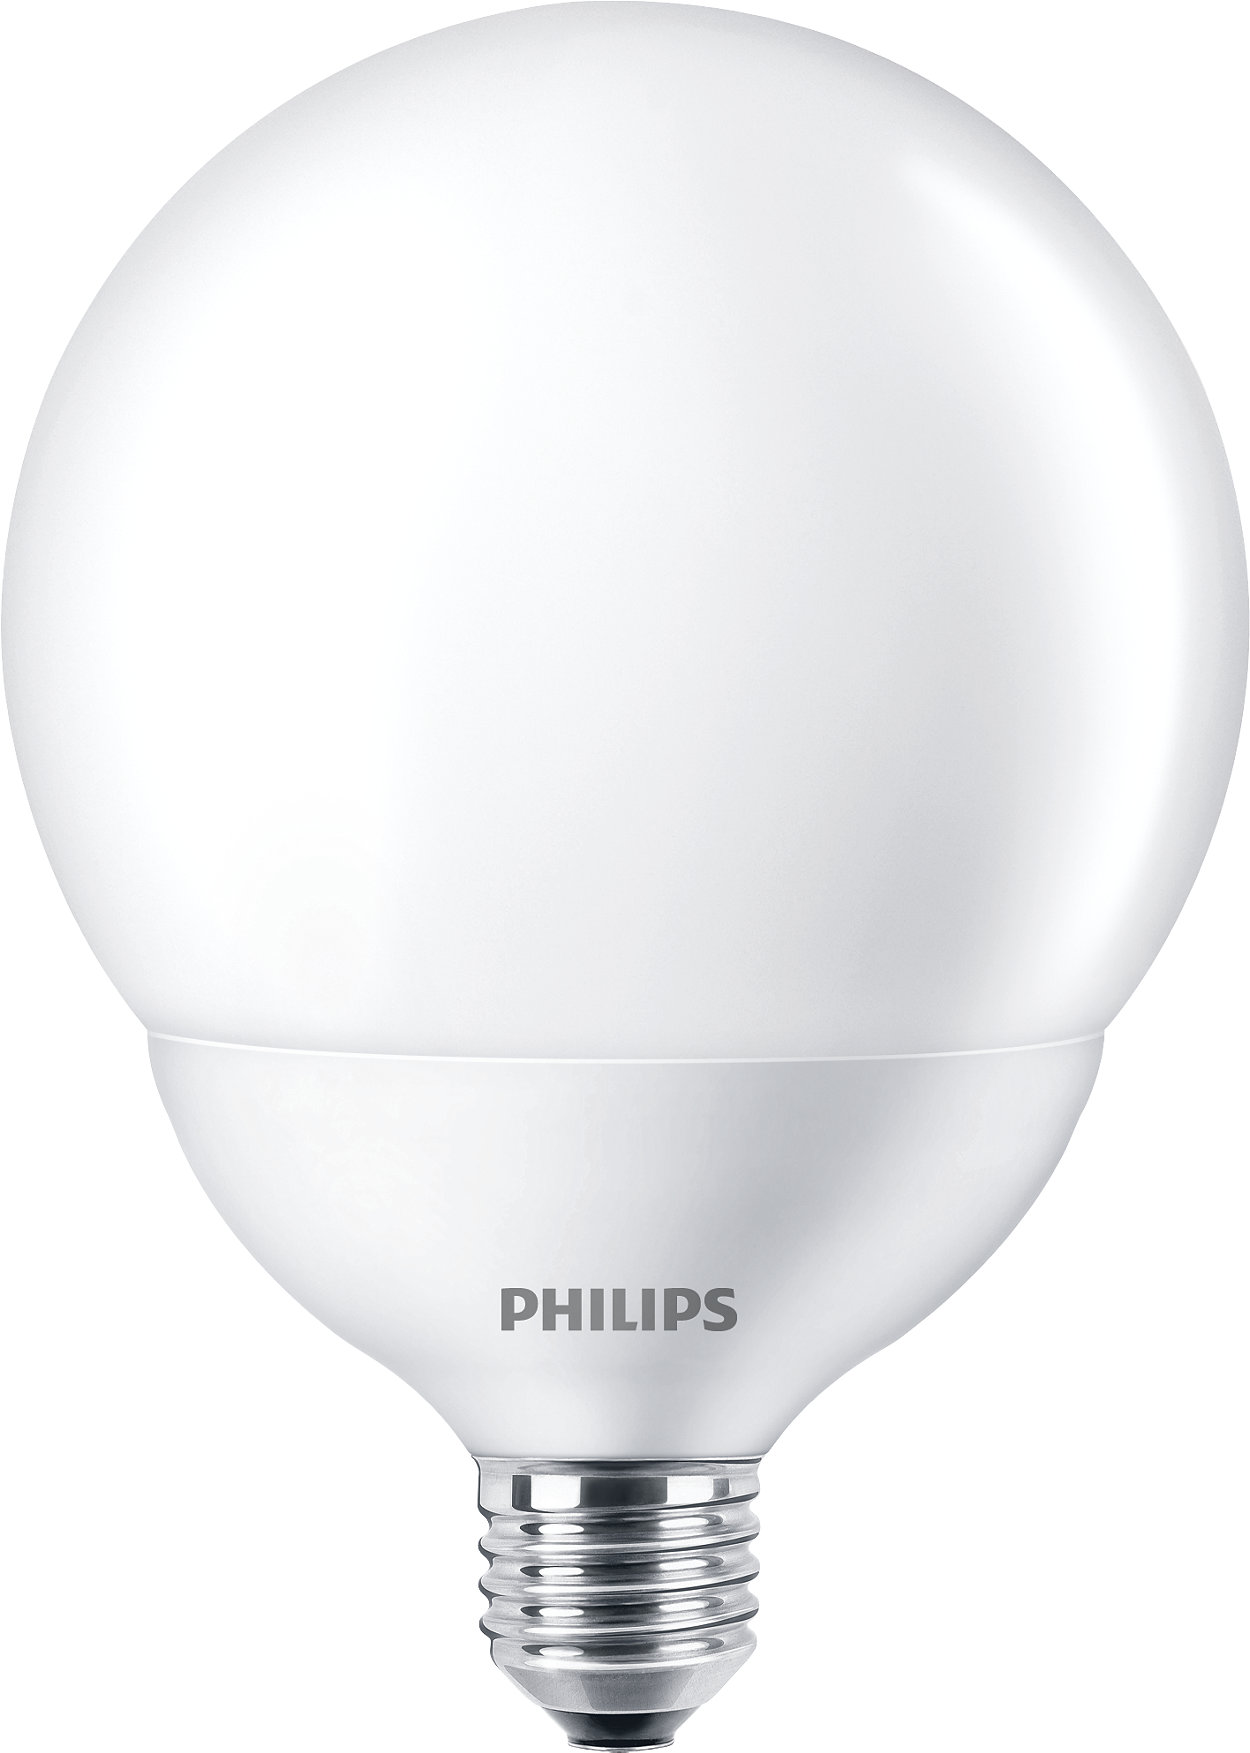 The LEDlamps are ideal for general lighting applications